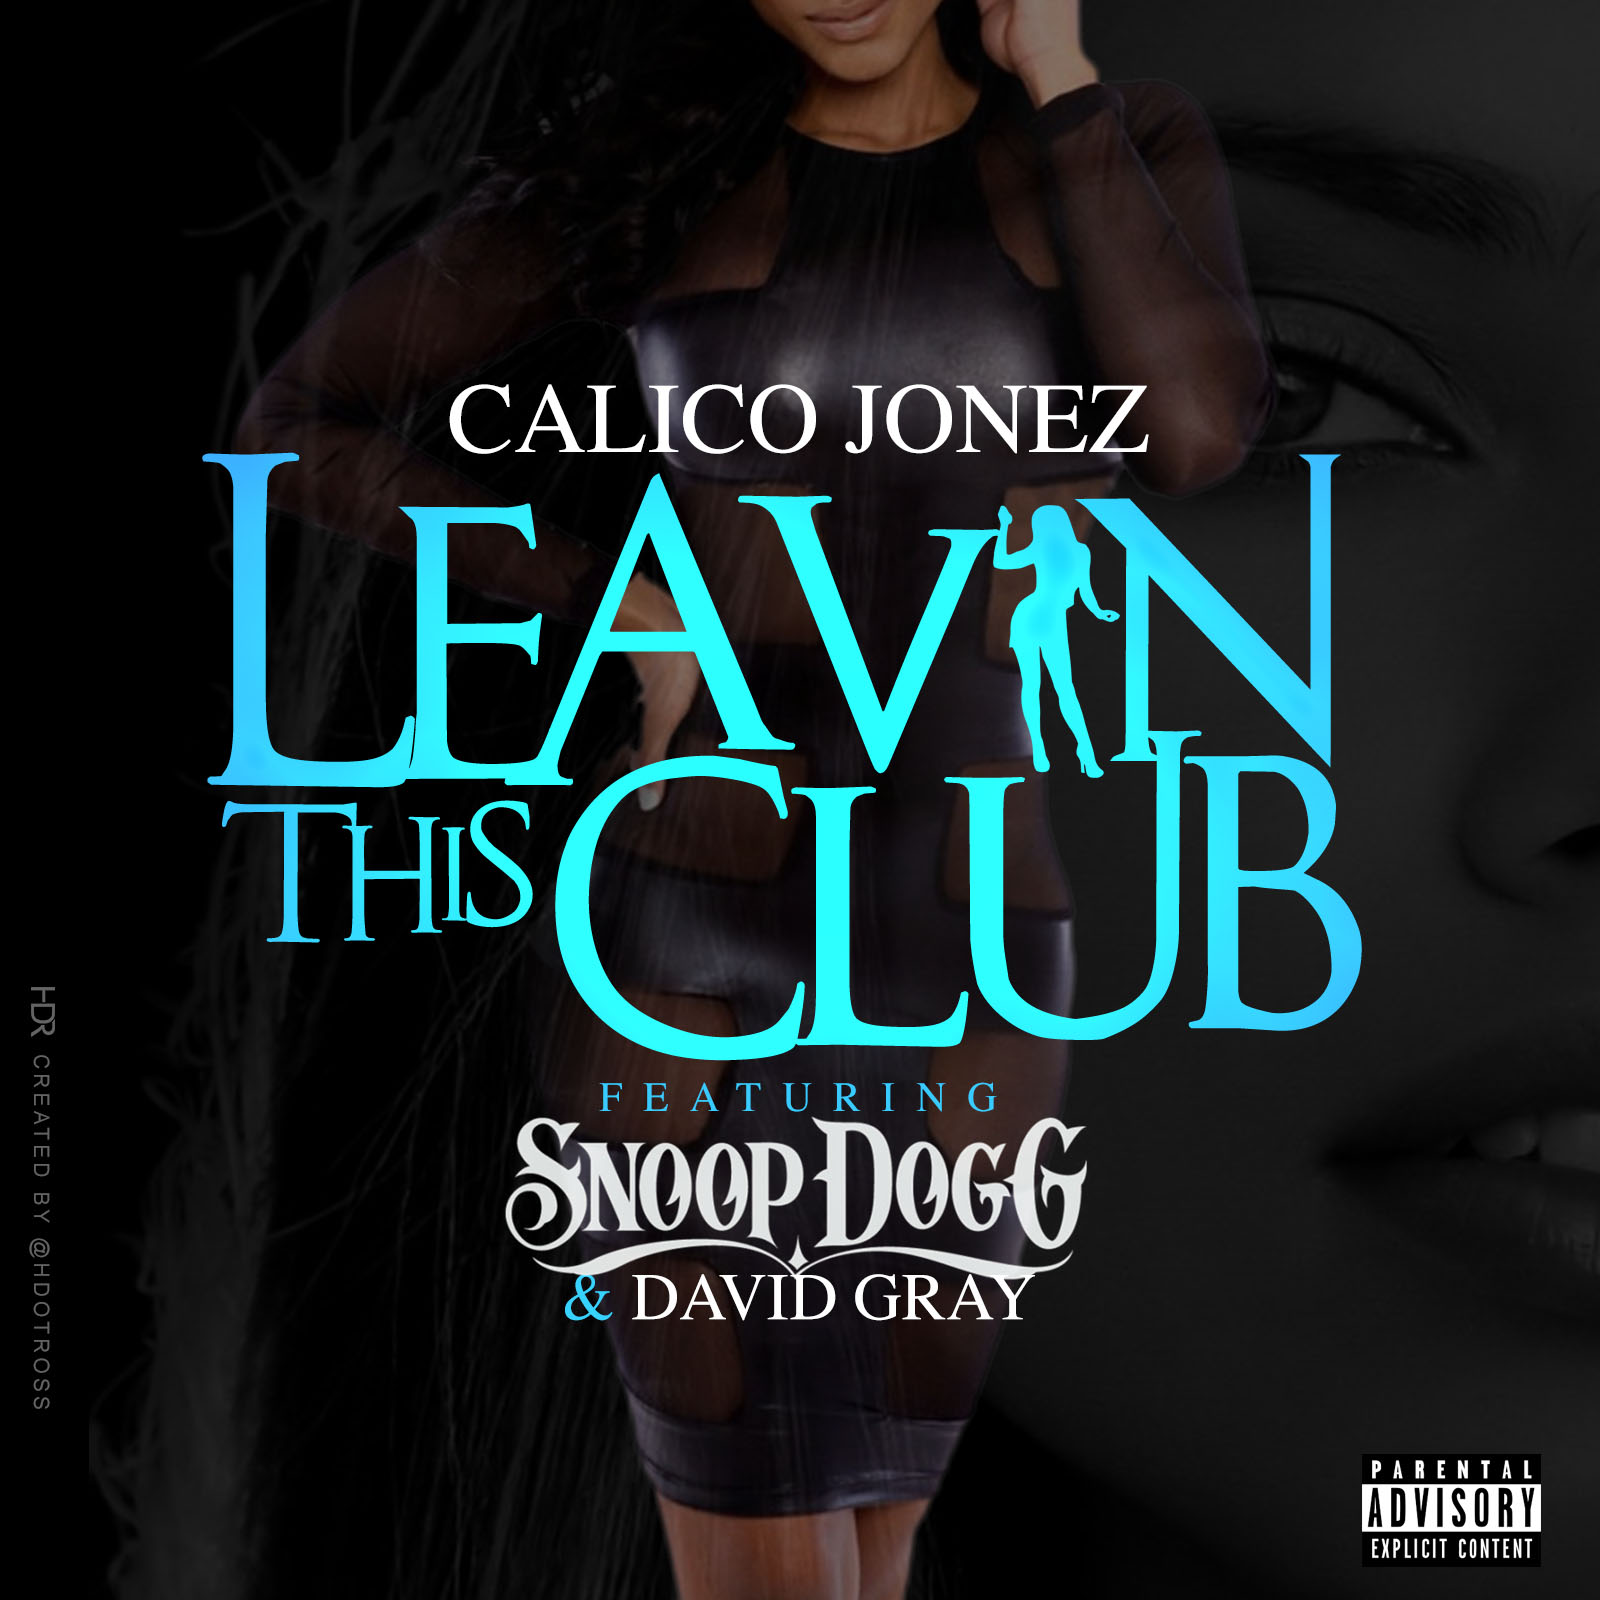 leavin the club cover